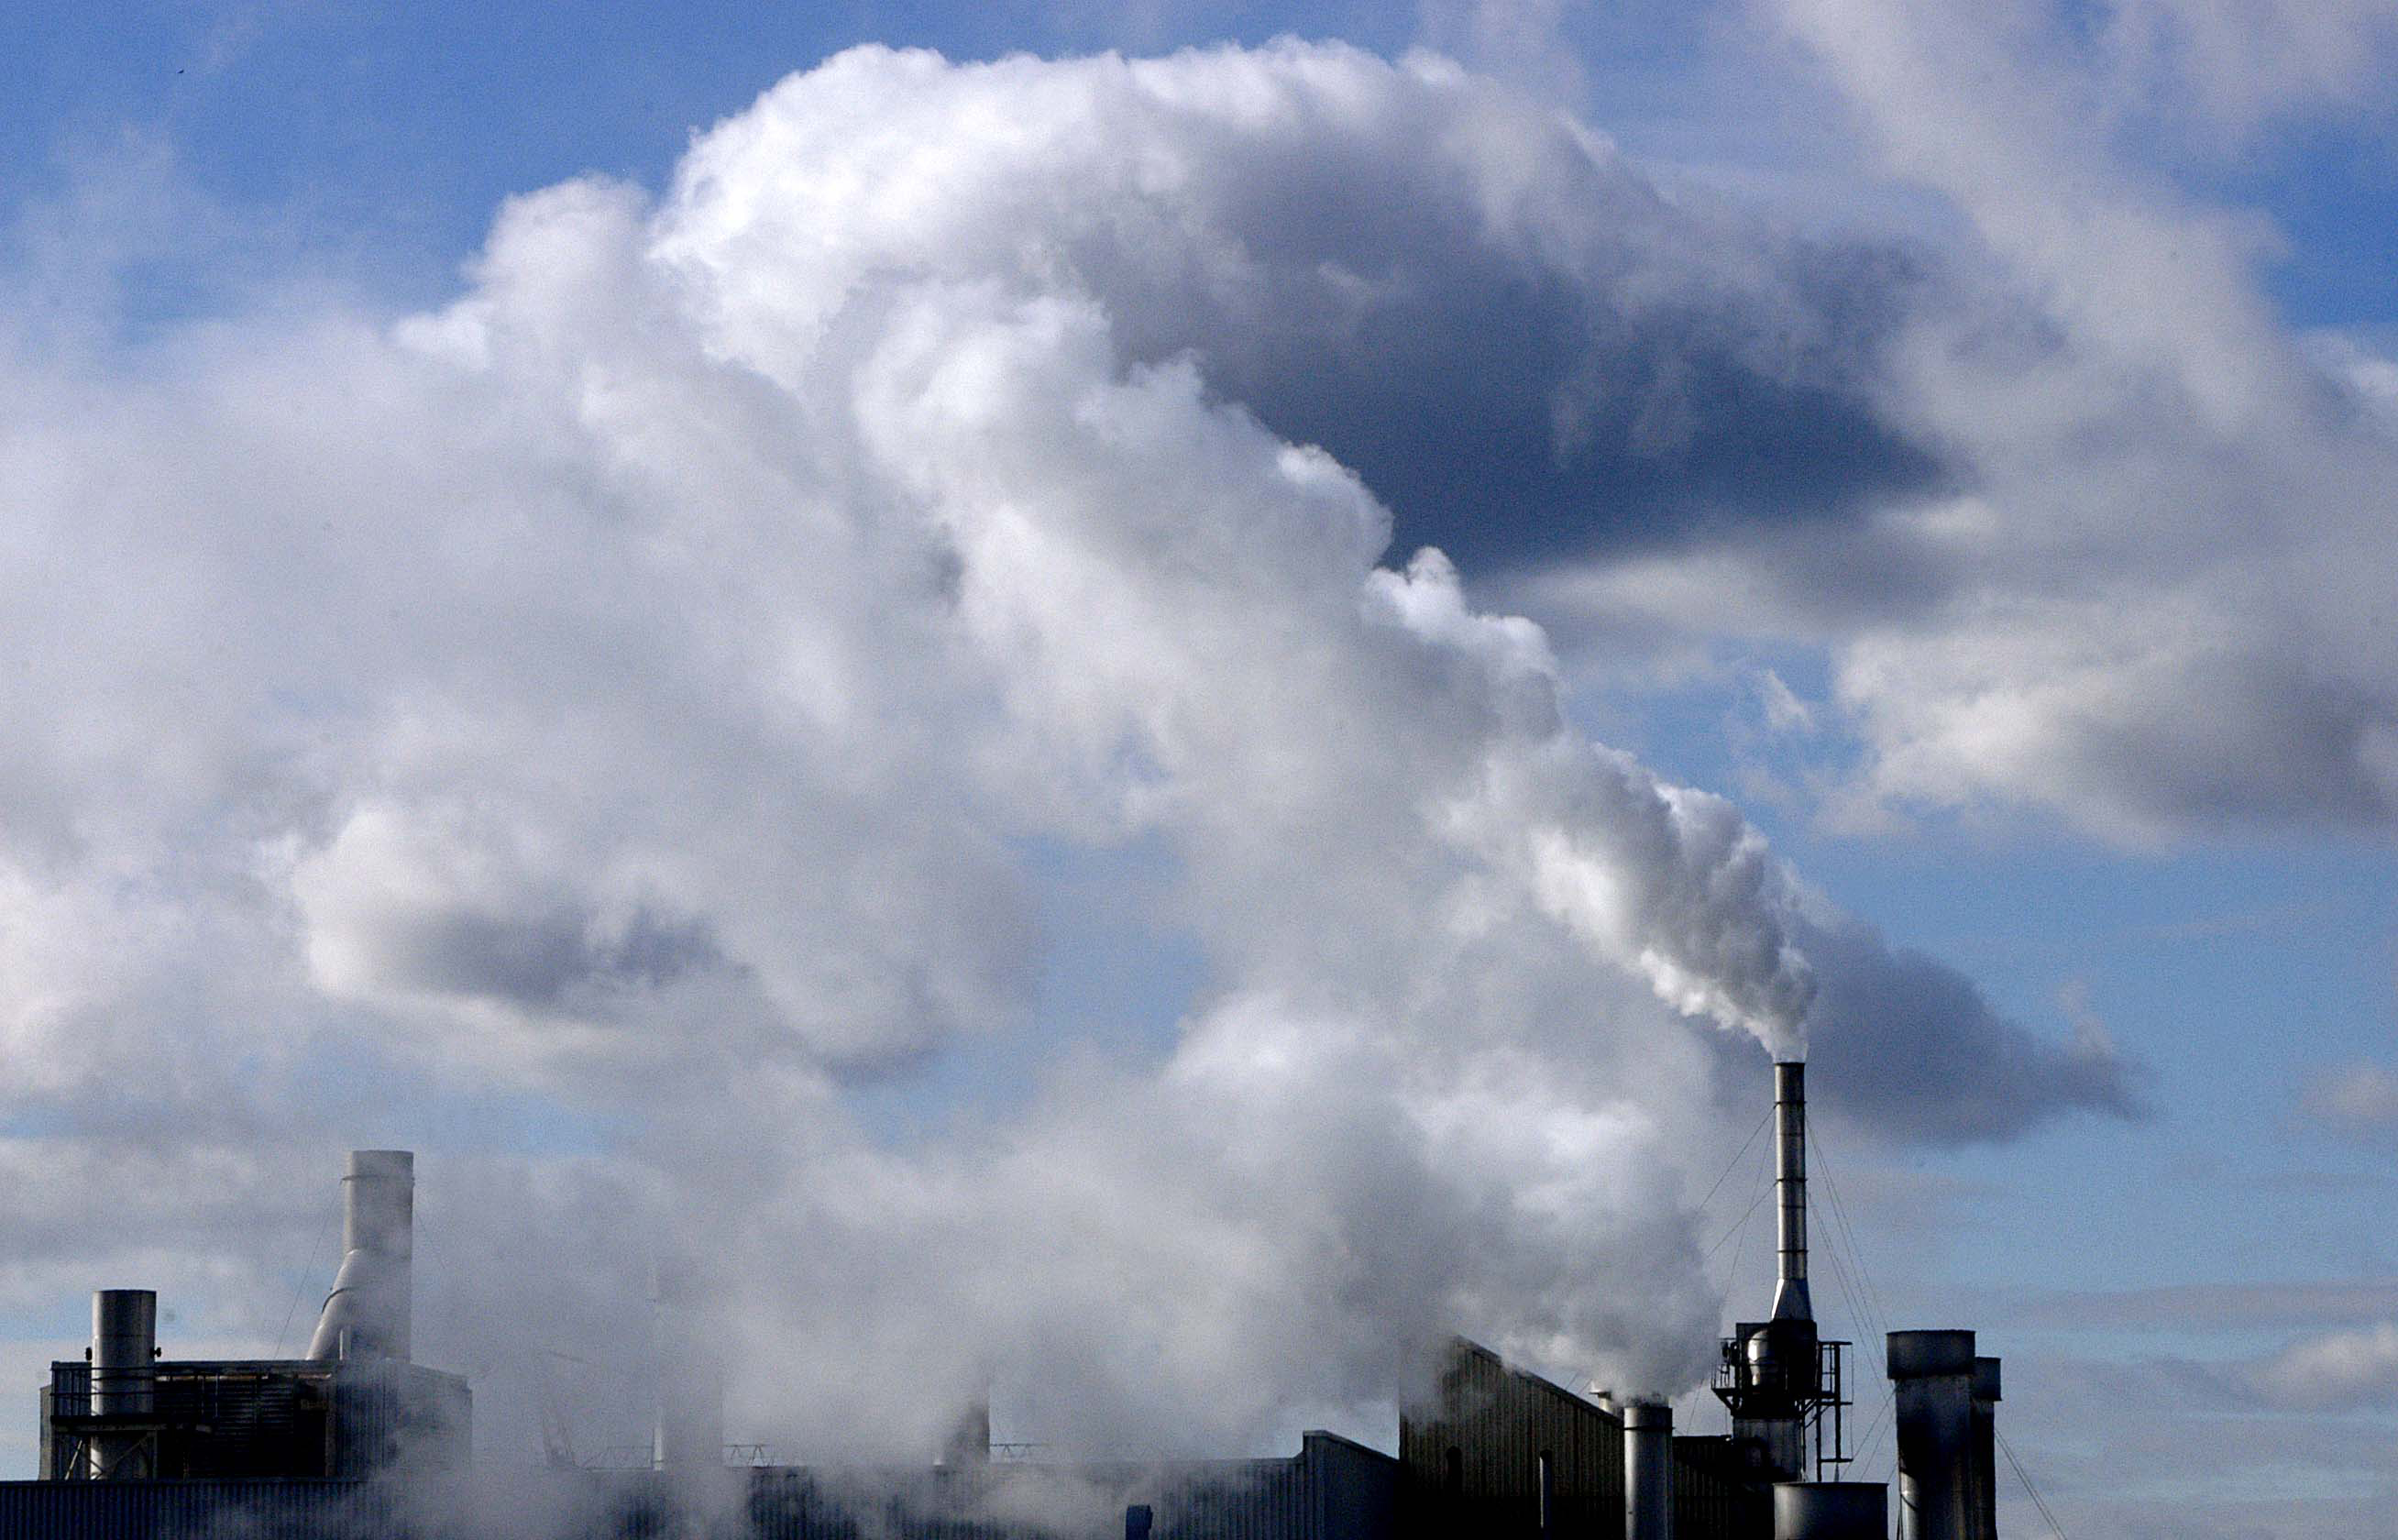 Harvard Study adds further evidence linking pollution to autism